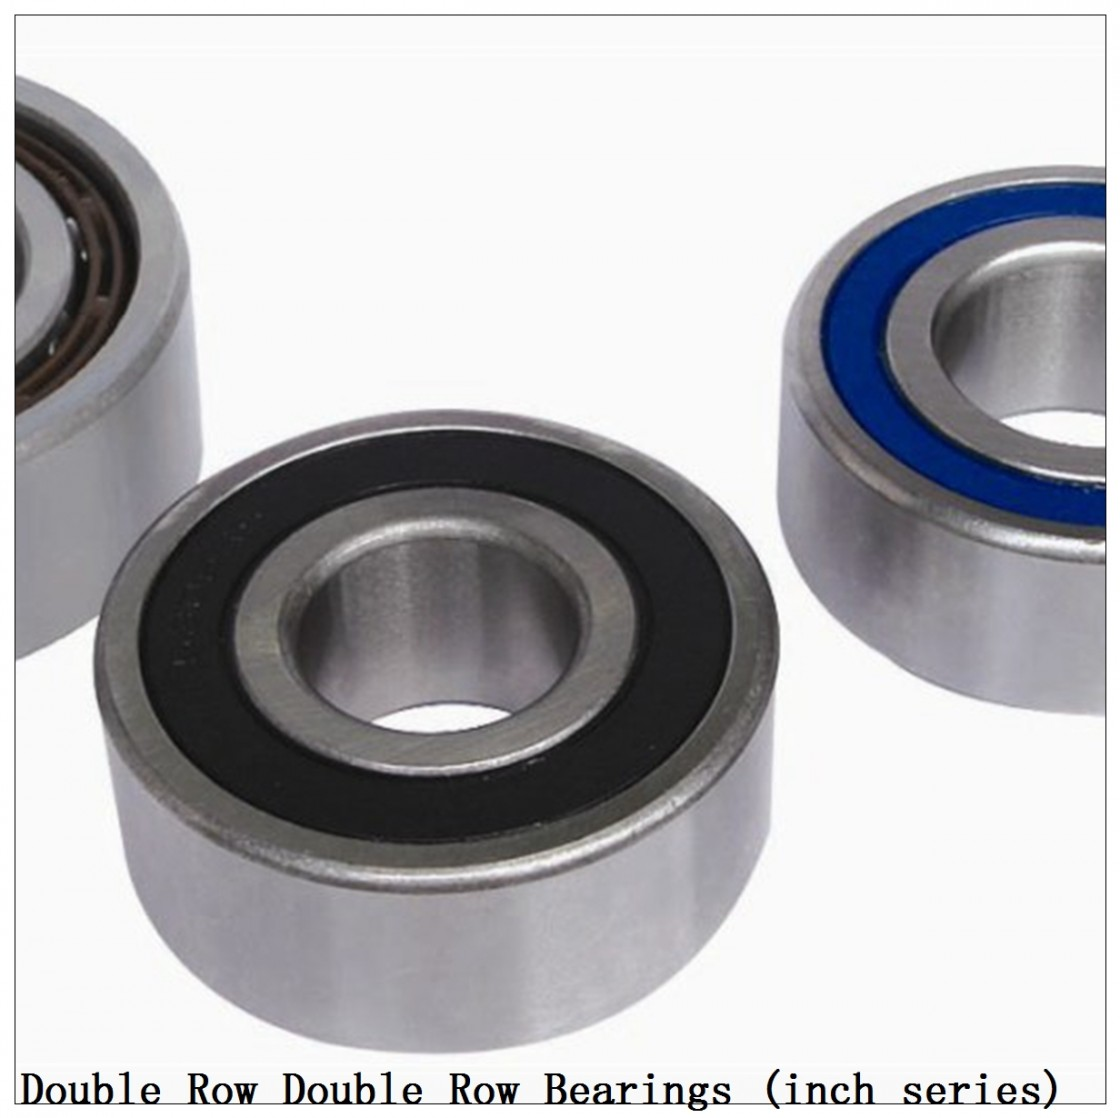 99603D/99100 Double row double row bearings (inch series)